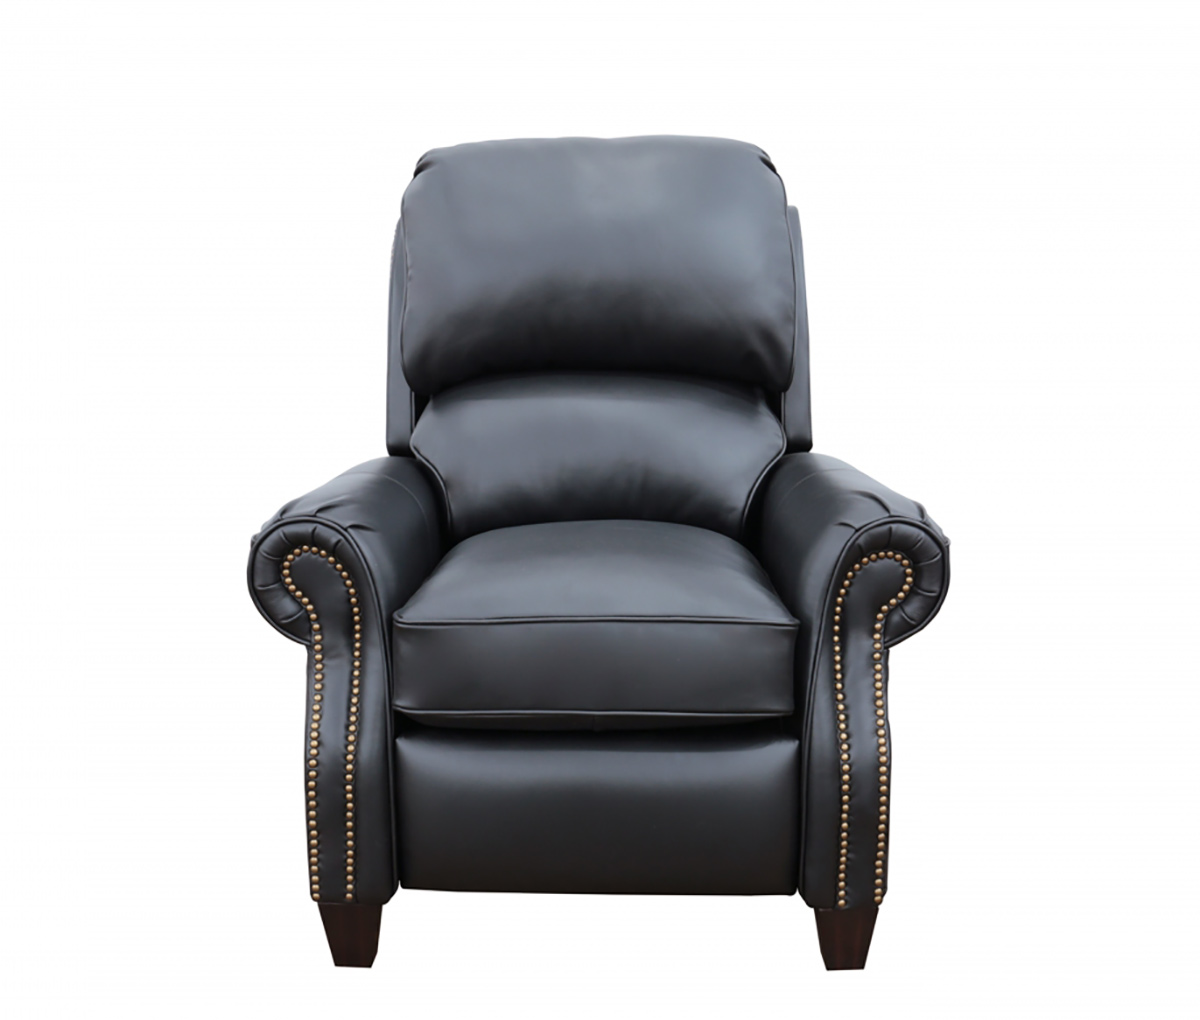 Barcalounger Churchill Recliner Chair - Wenlock Onyx/All Leather